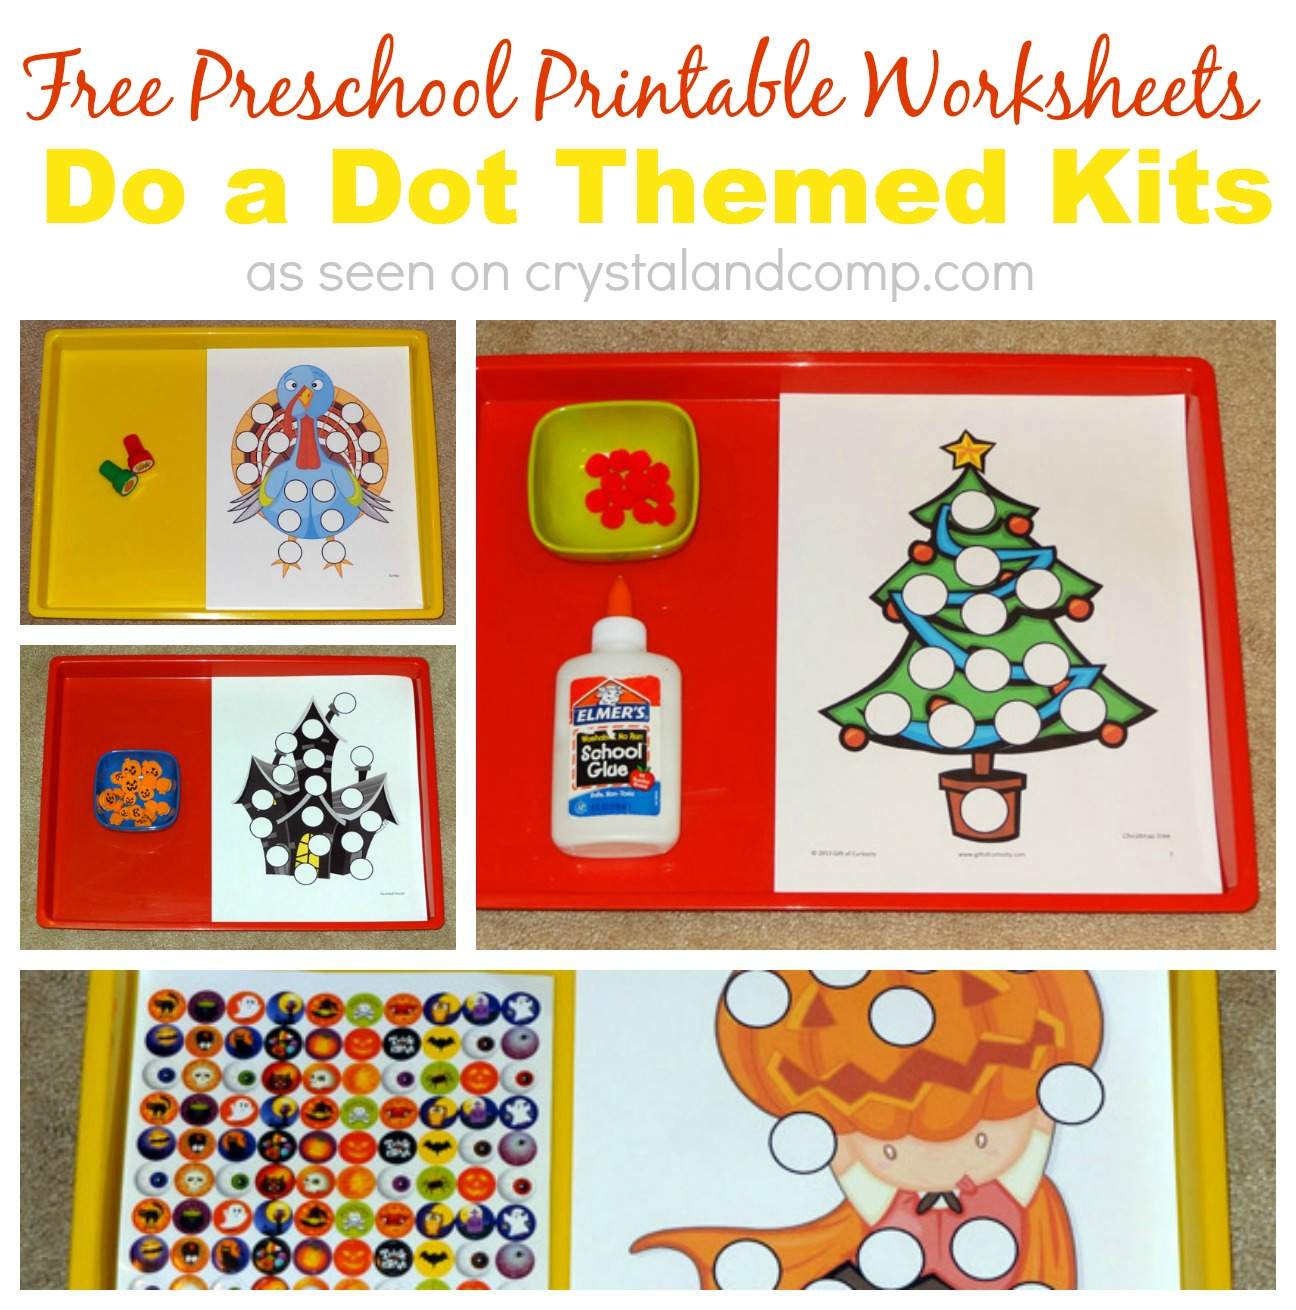 Free Preschool Printable Worksheets